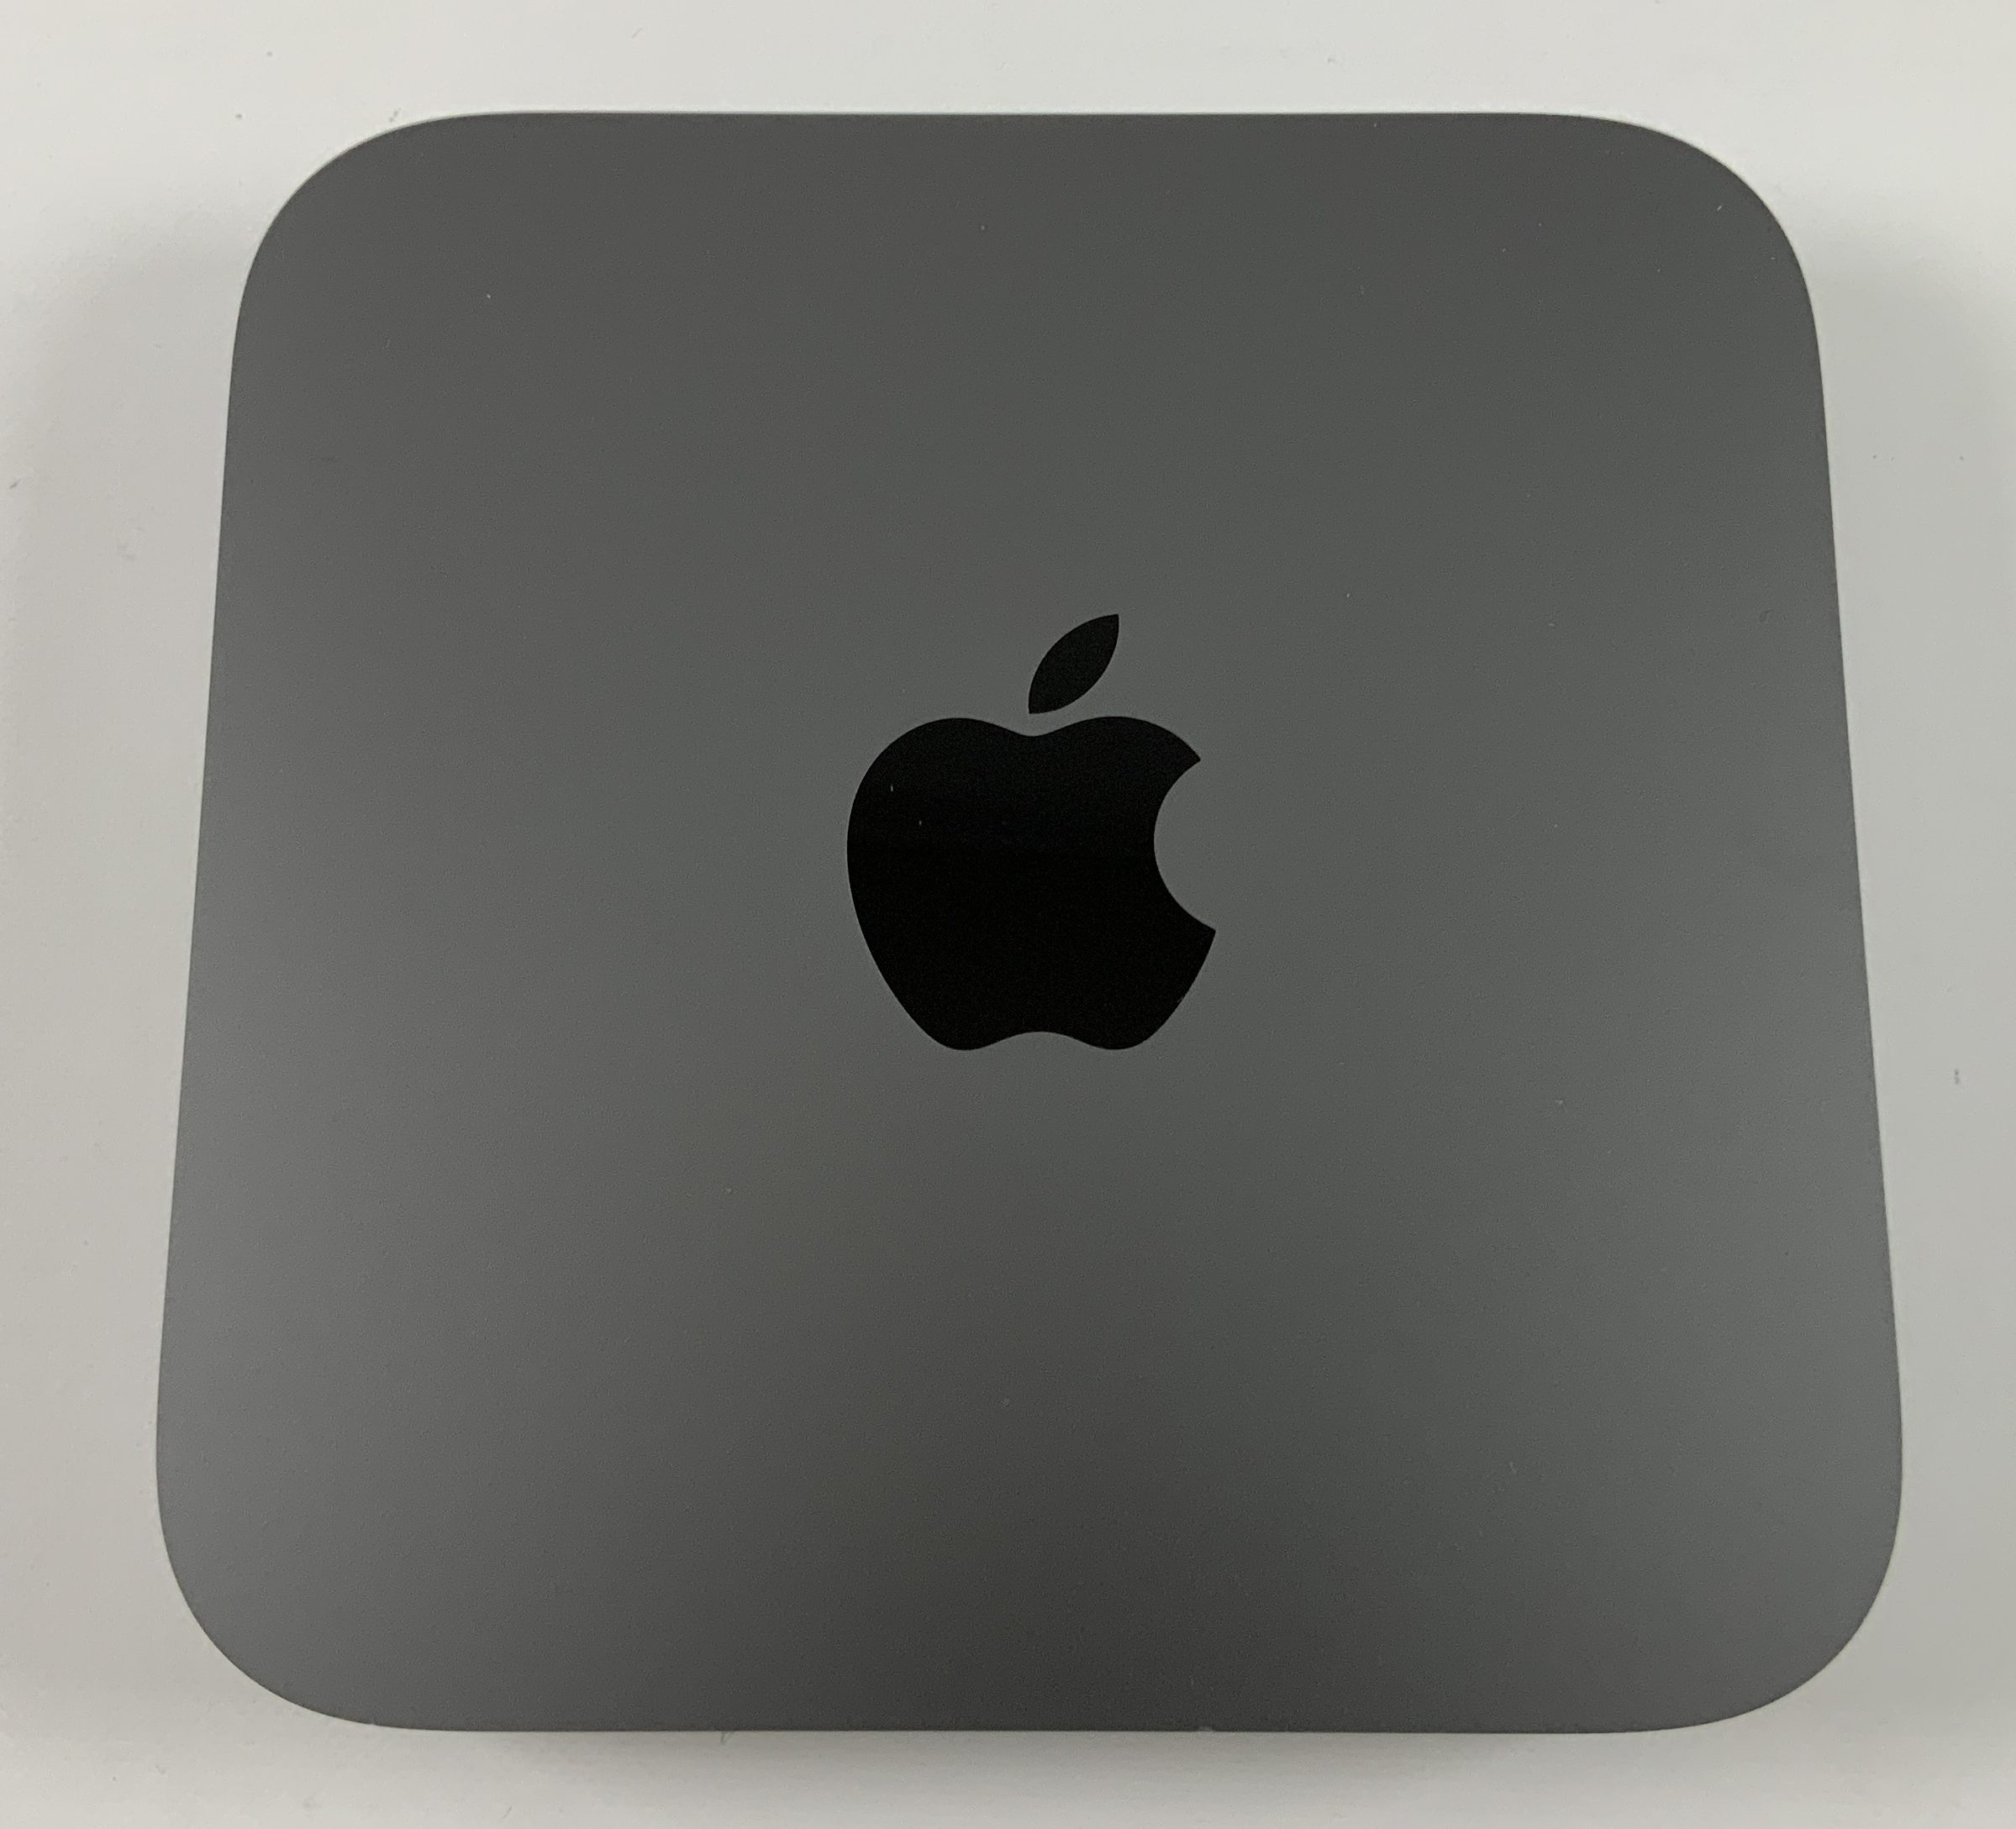 Mac Mini Late 2018 (Intel 6-Core i5 3.0 GHz 8 GB RAM 256 GB SSD), Intel 6-Core i5 3.0 GHz, 8 GB RAM, 256 GB SSD, bild 3